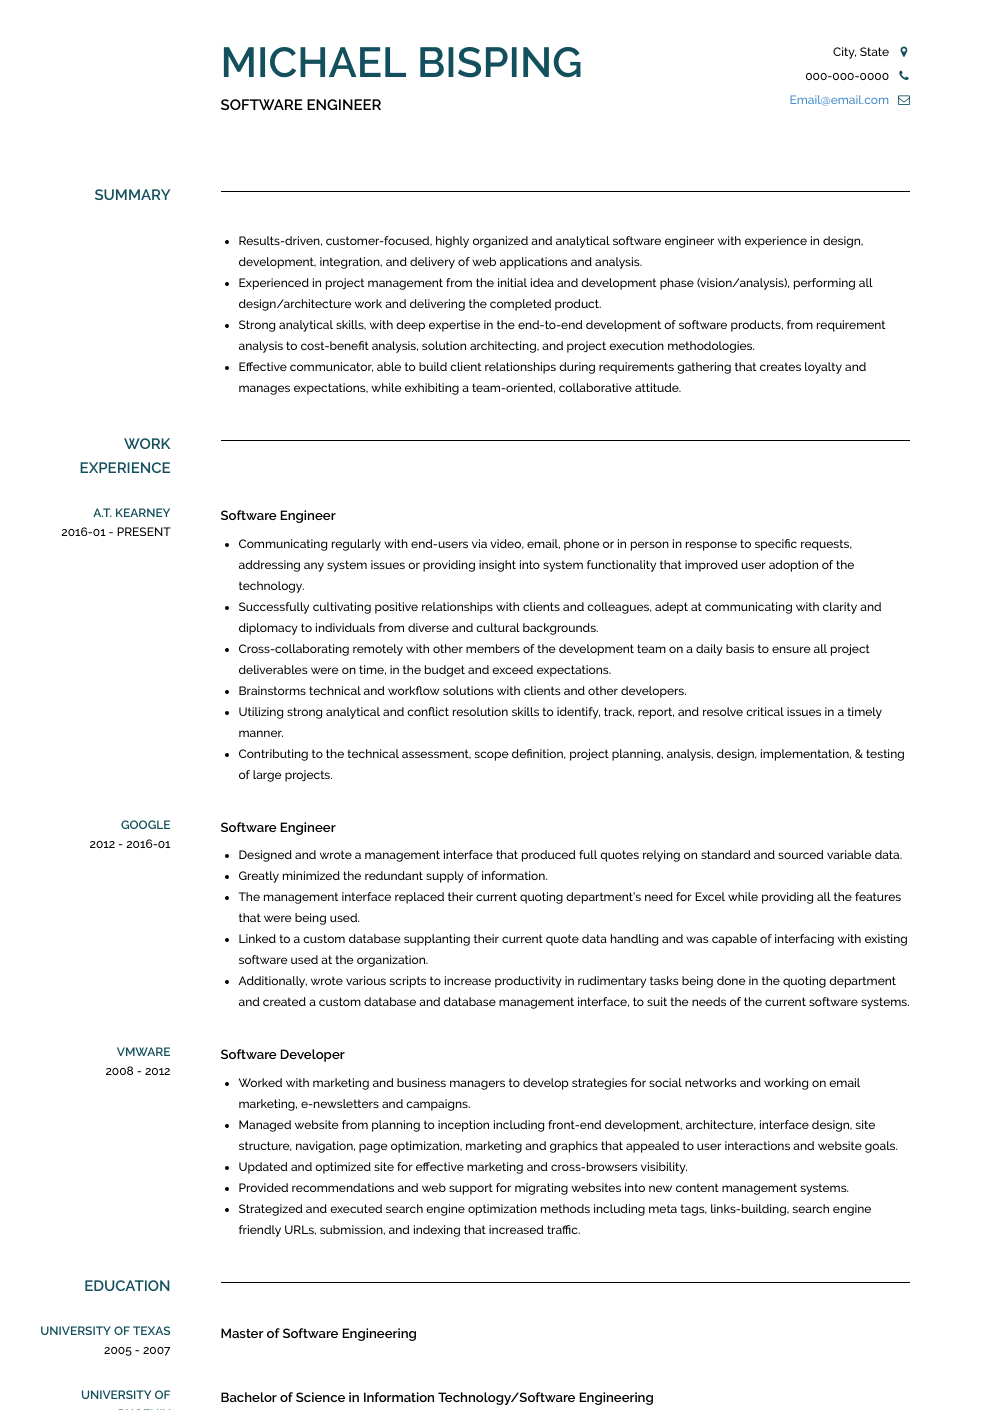 Software Engineer Resume Samples & Templates VisualCV